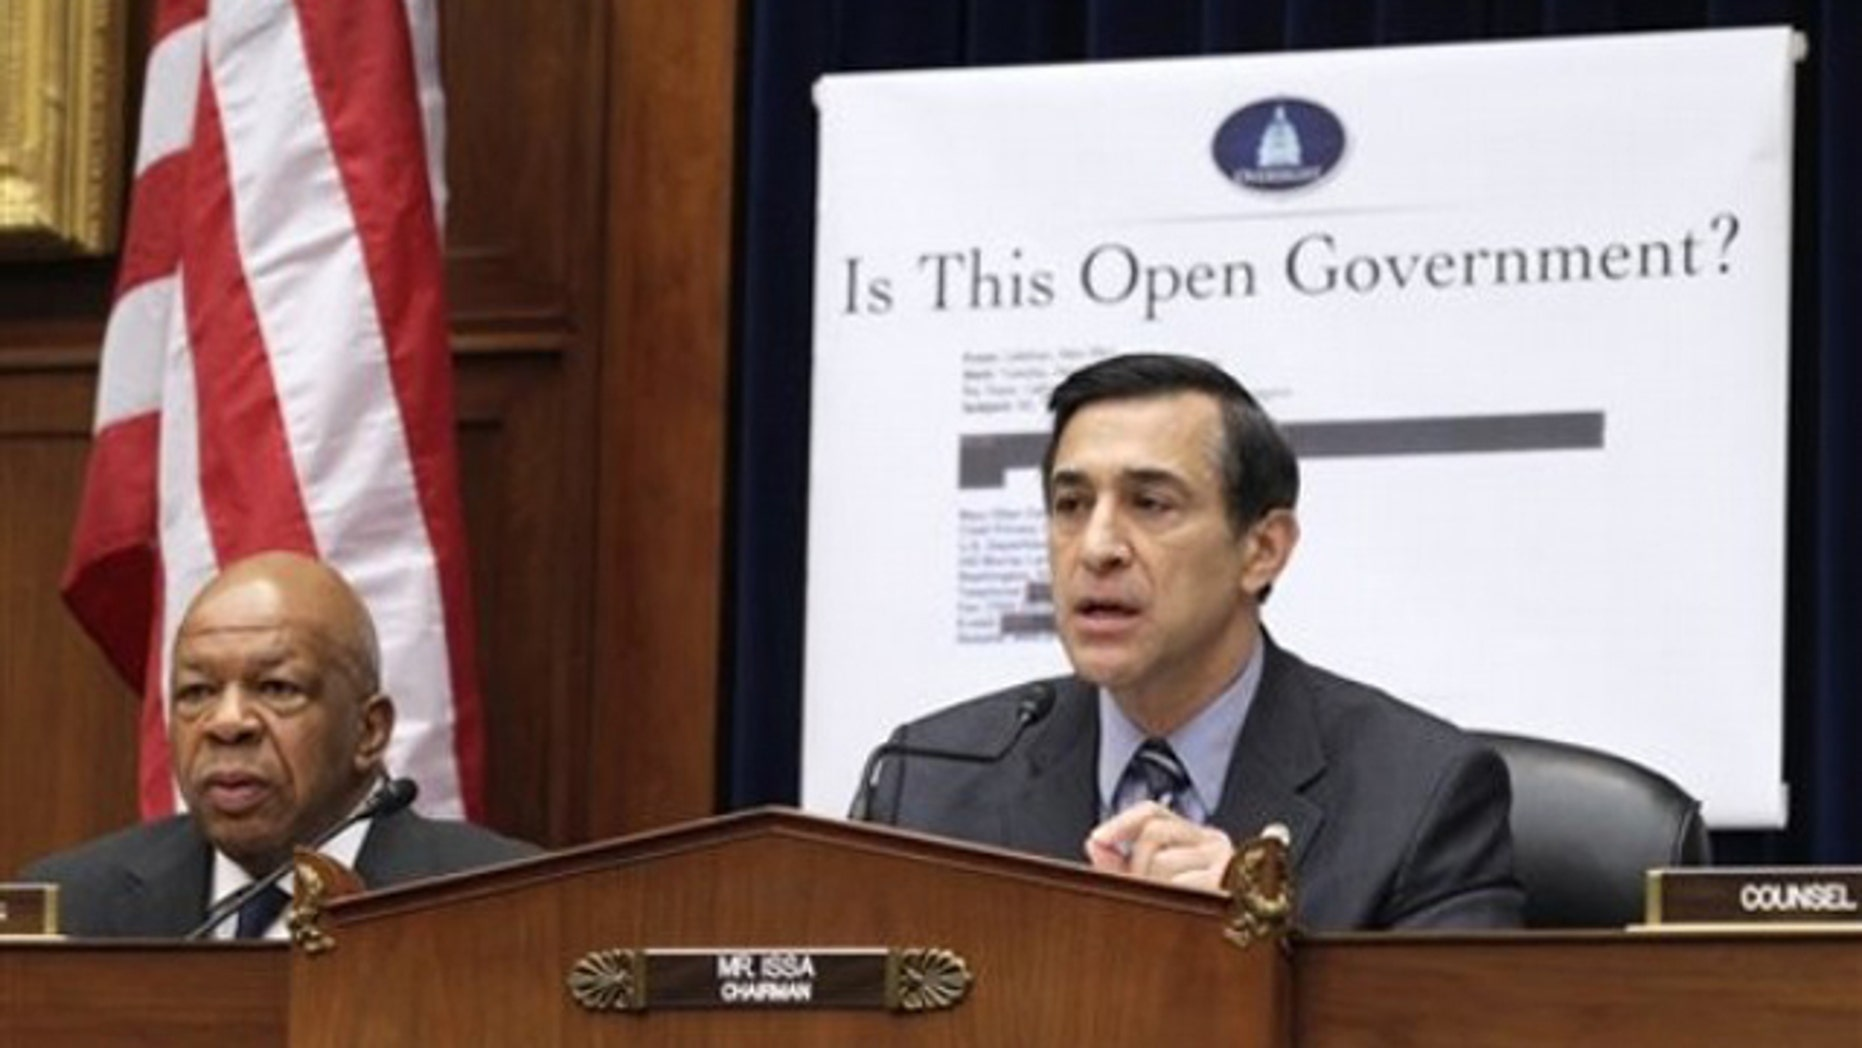 House Oversight and Government Reform Committee Chairman Rep. Darrell Issa, right, accompanied by Democrat Rep. Elijah Cummings, presides over a hearing March 31 on Capitol Hill.